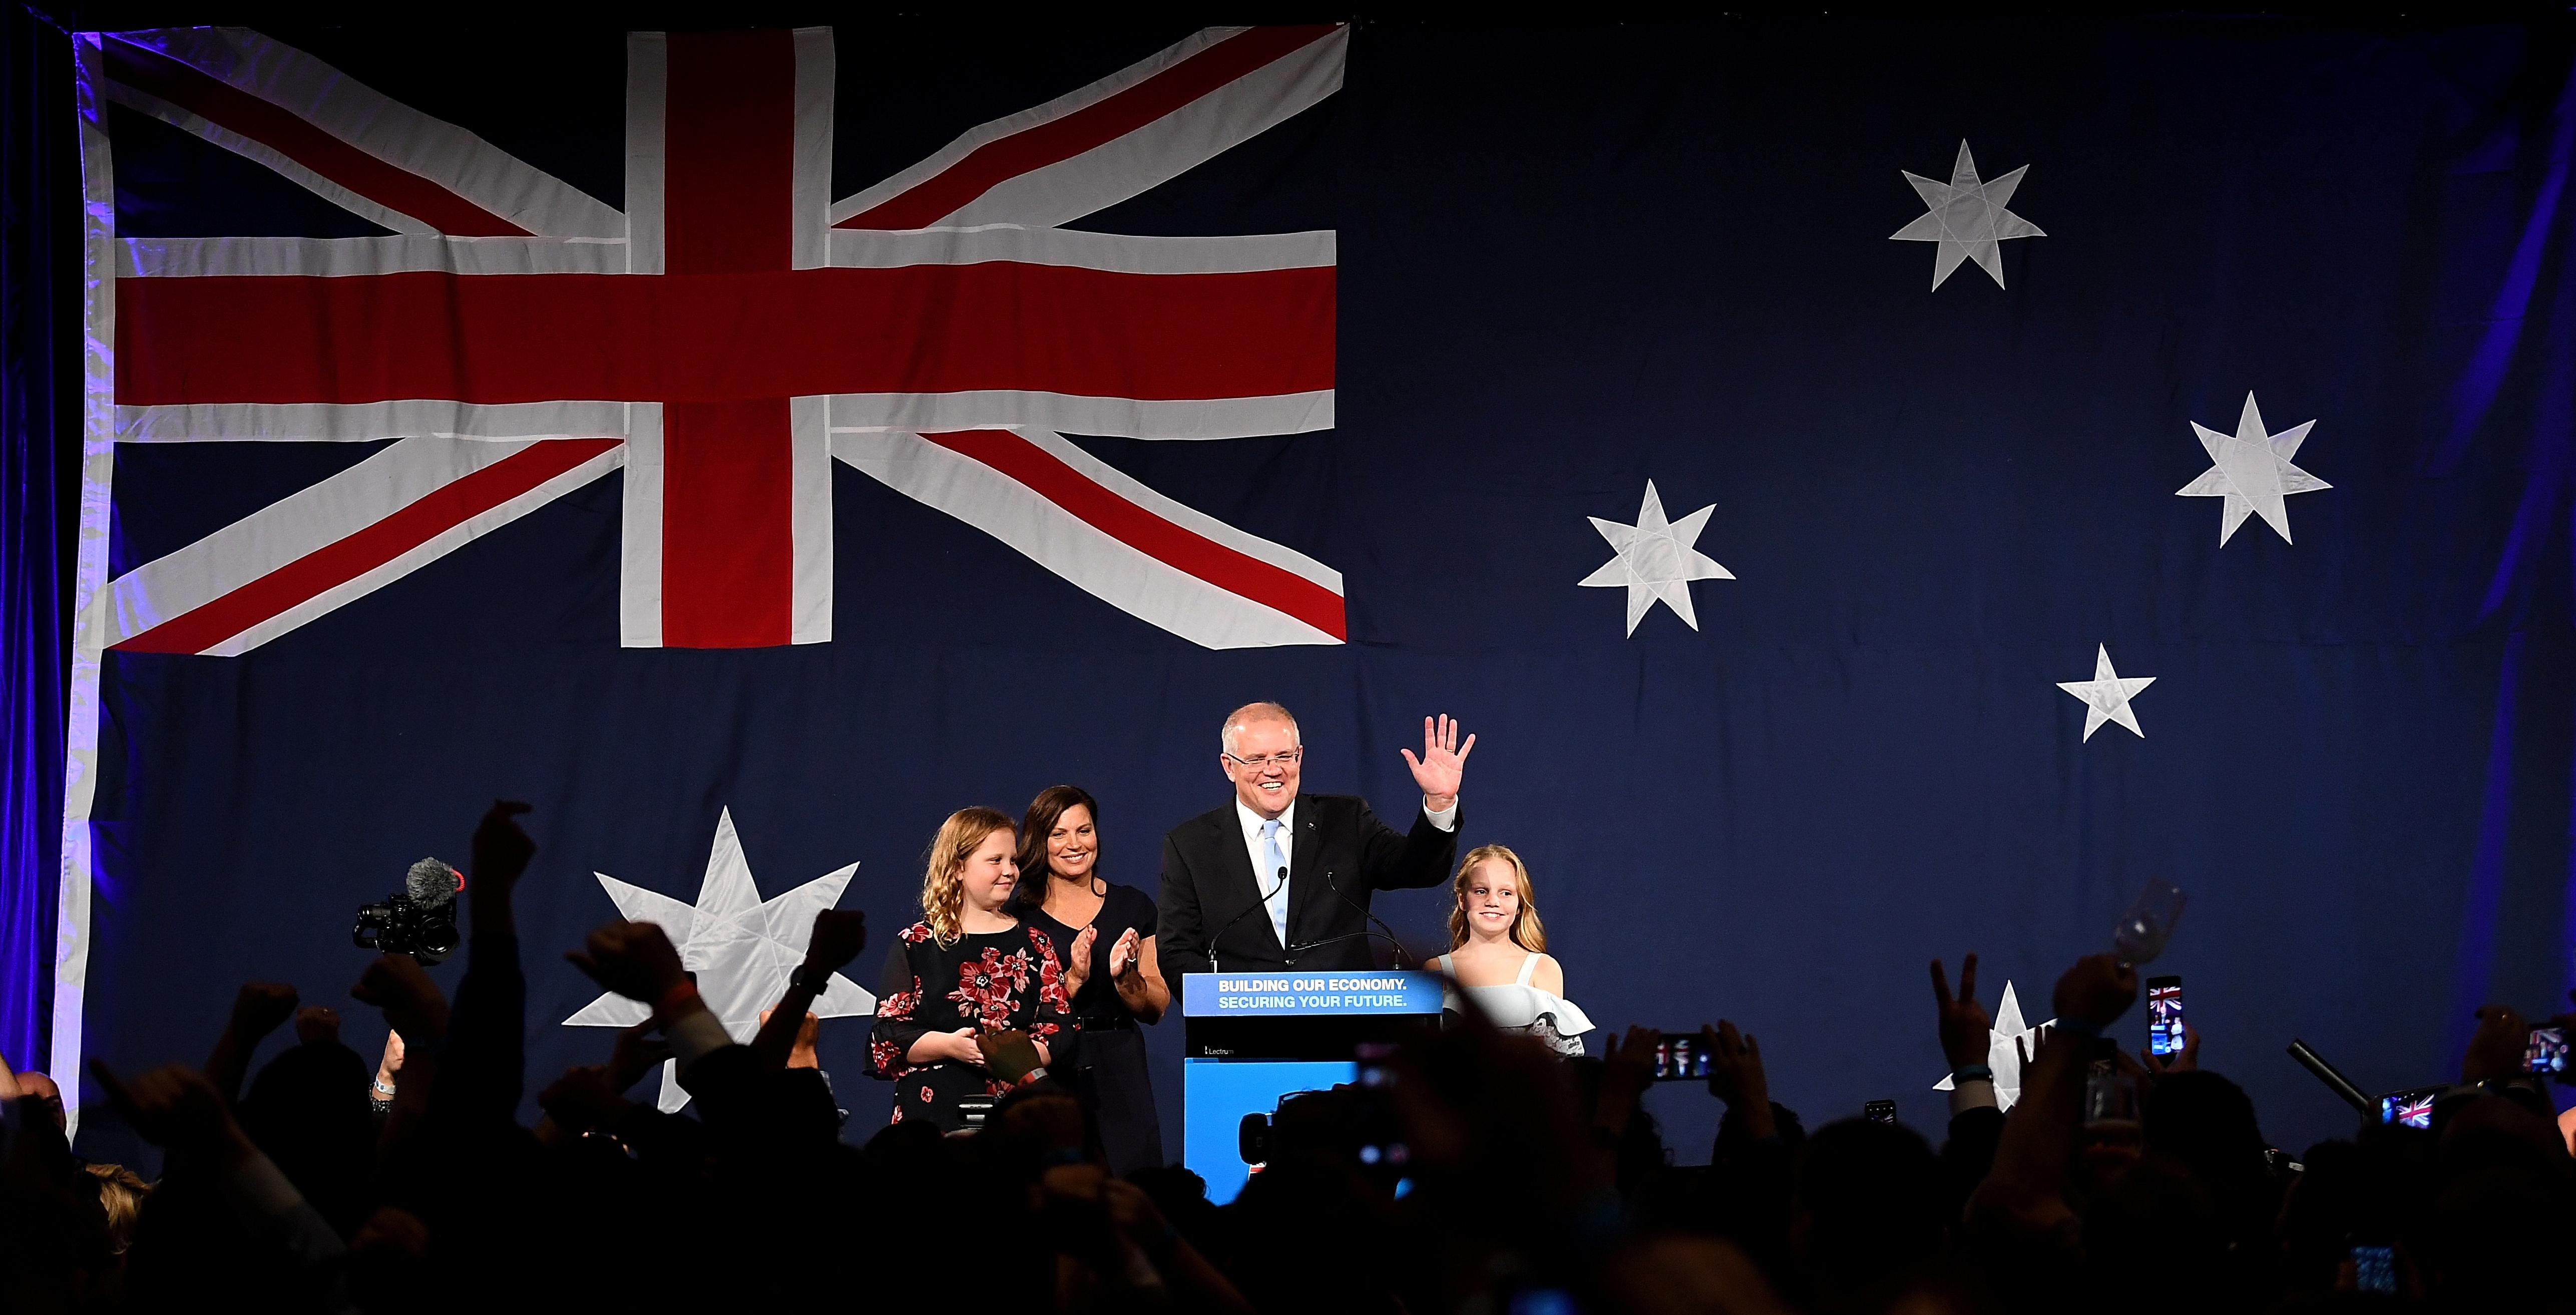 Australia's Conservative Government On Course For 'miracle